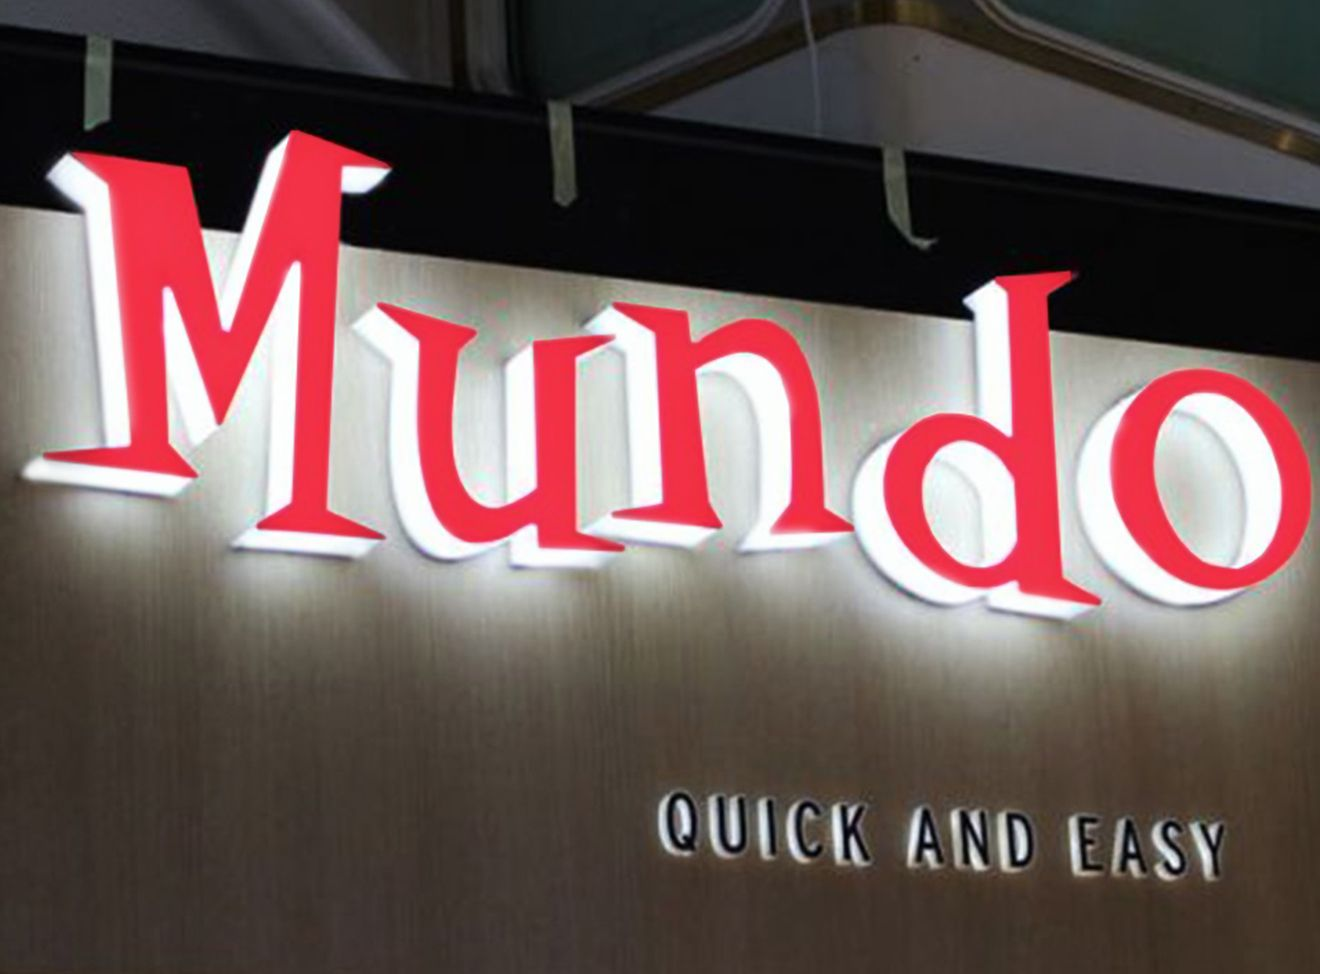 Mundo quick and easy project